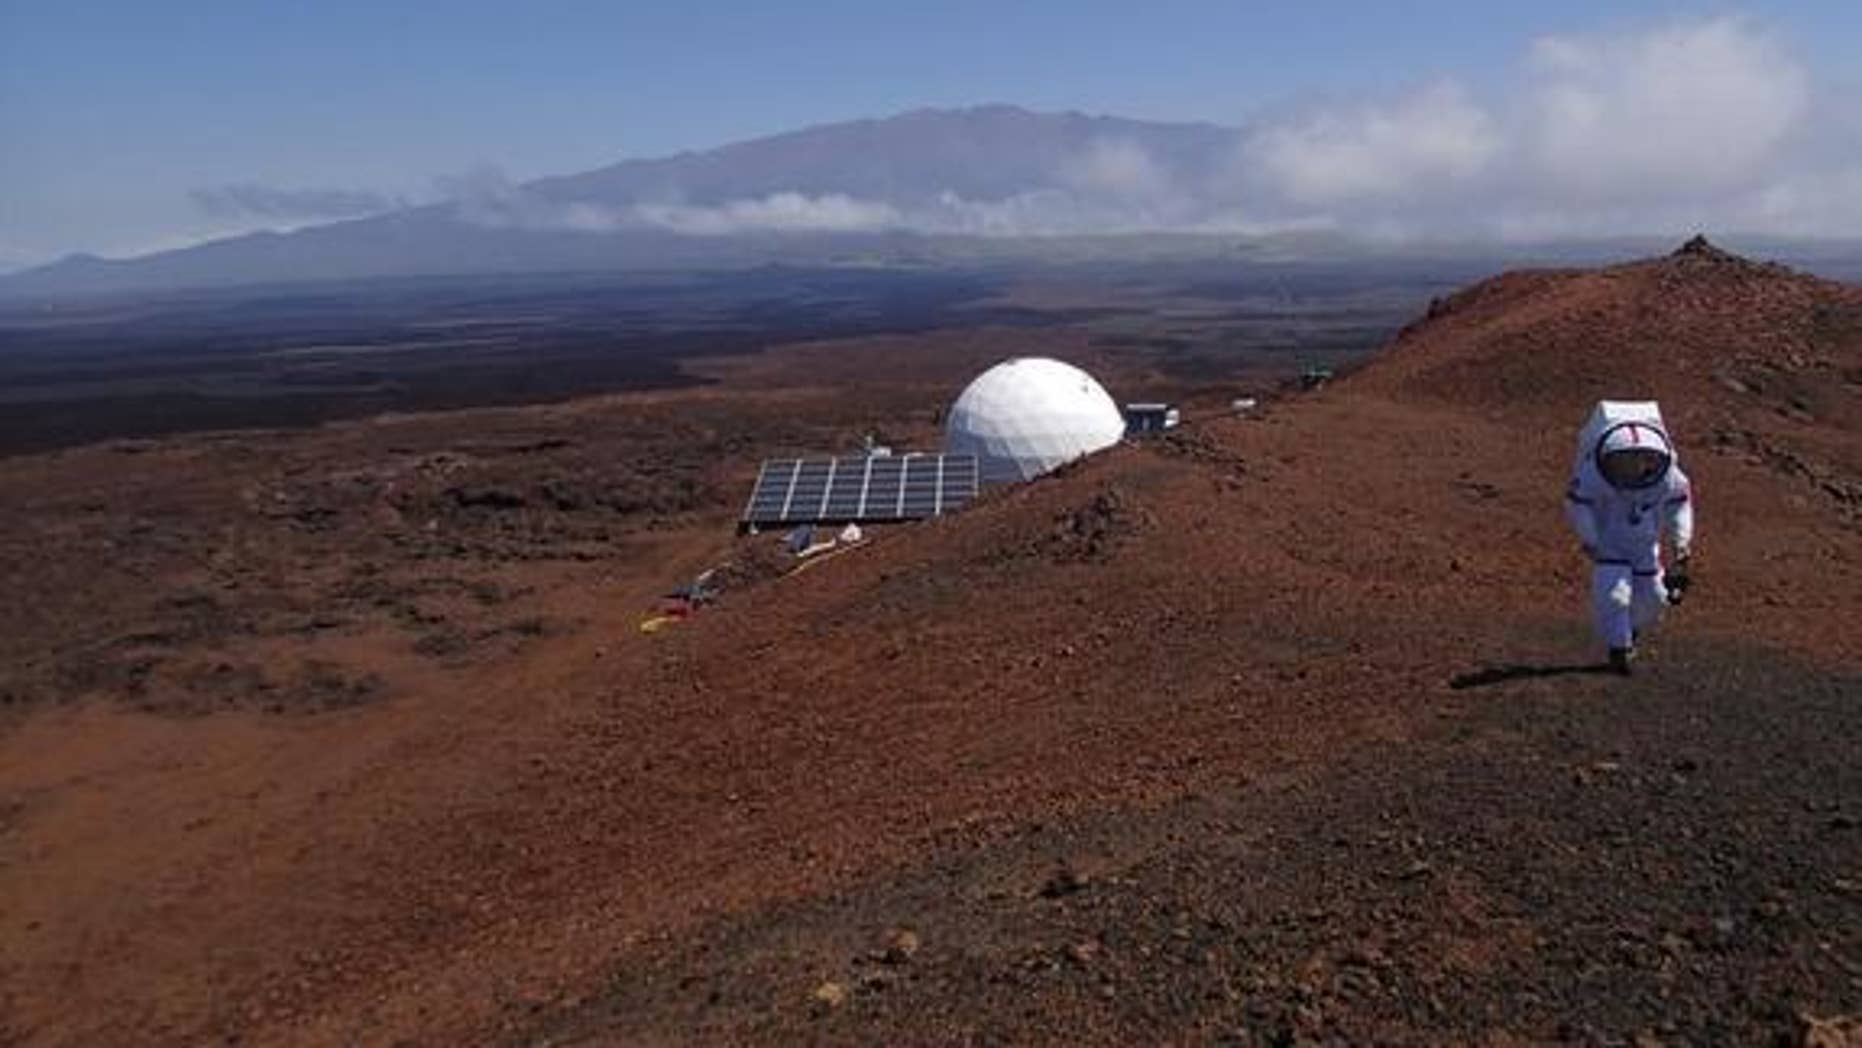 A view of the HI-SEAS habitat on the island of Hawai'i, where six crew members will spend a year in isolation. The experiment is meant to test the social and psychological effects of a real Mars mission.